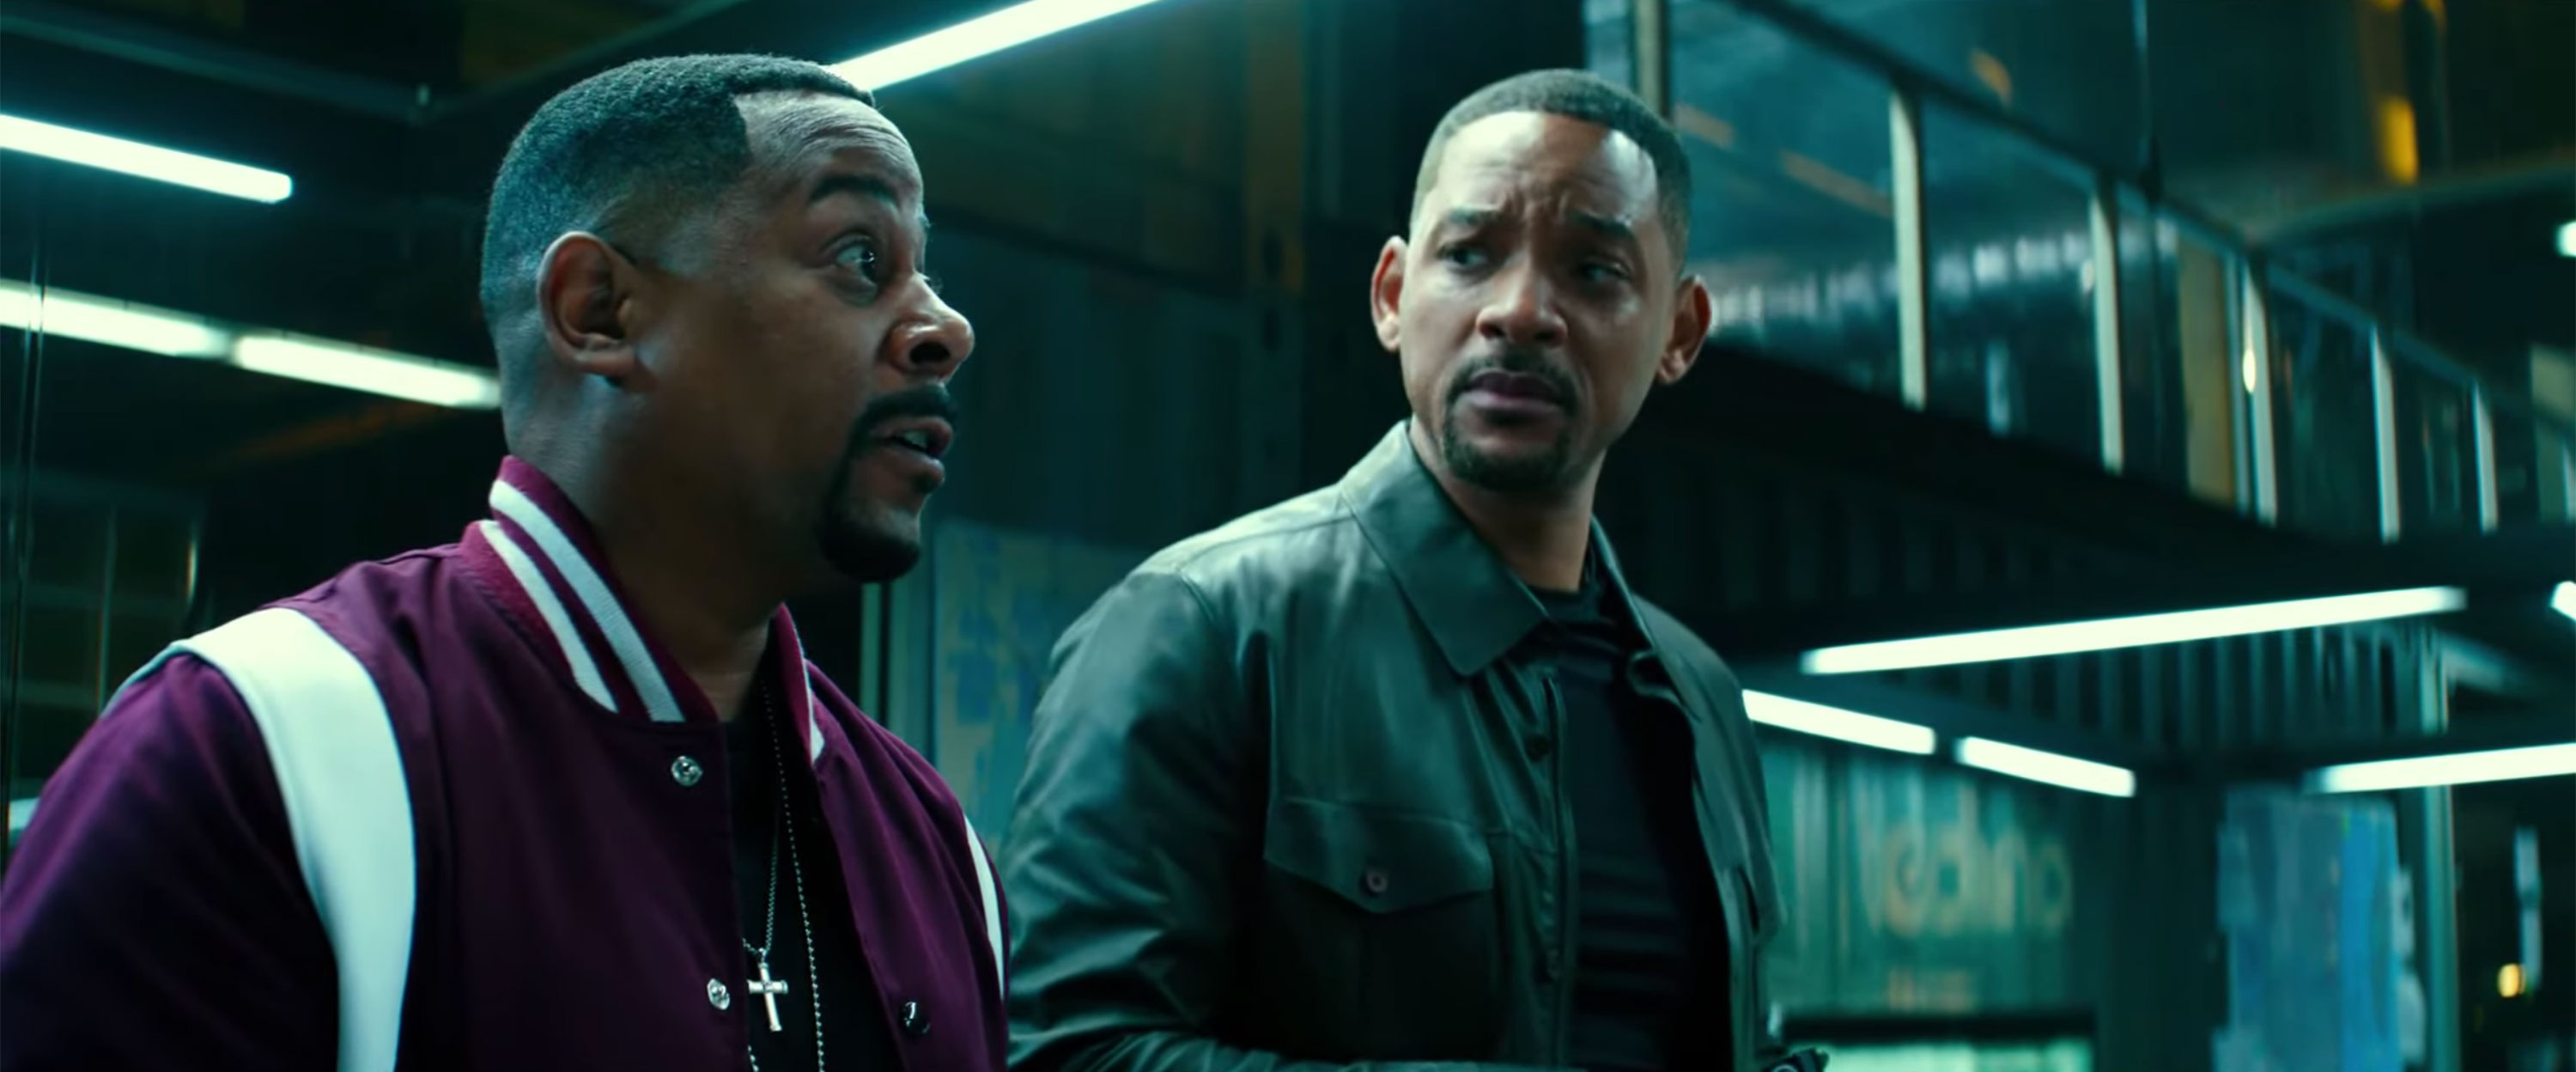 Photo of Se estrena un nuevo trailer de 'Bad Boys For Life' protagonizado por Will Smith y Martin Lawrence